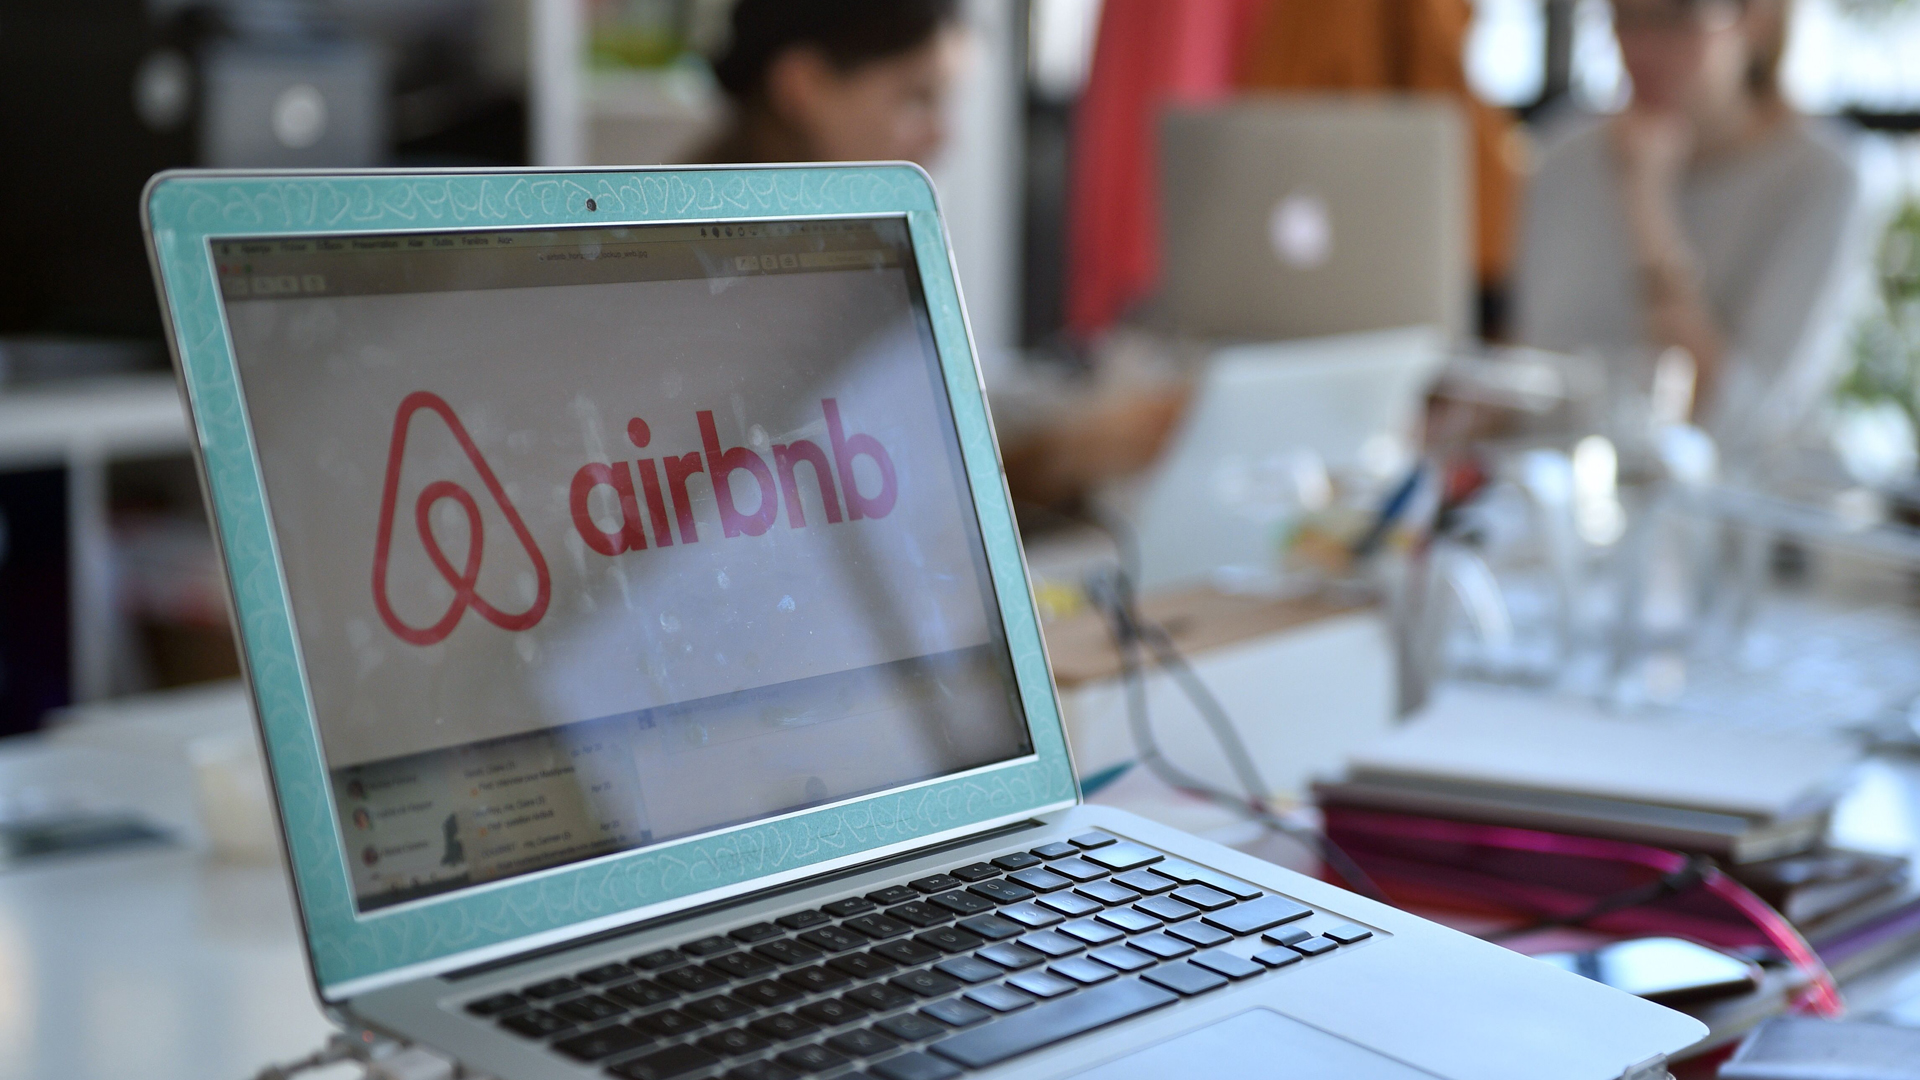 A screen showing the logo for lodging service Airbnb is seen on a computer screen in the company's offices in Paris on April 21, 2015.(Credit: Martin Bureau/AFP/Getty Images)